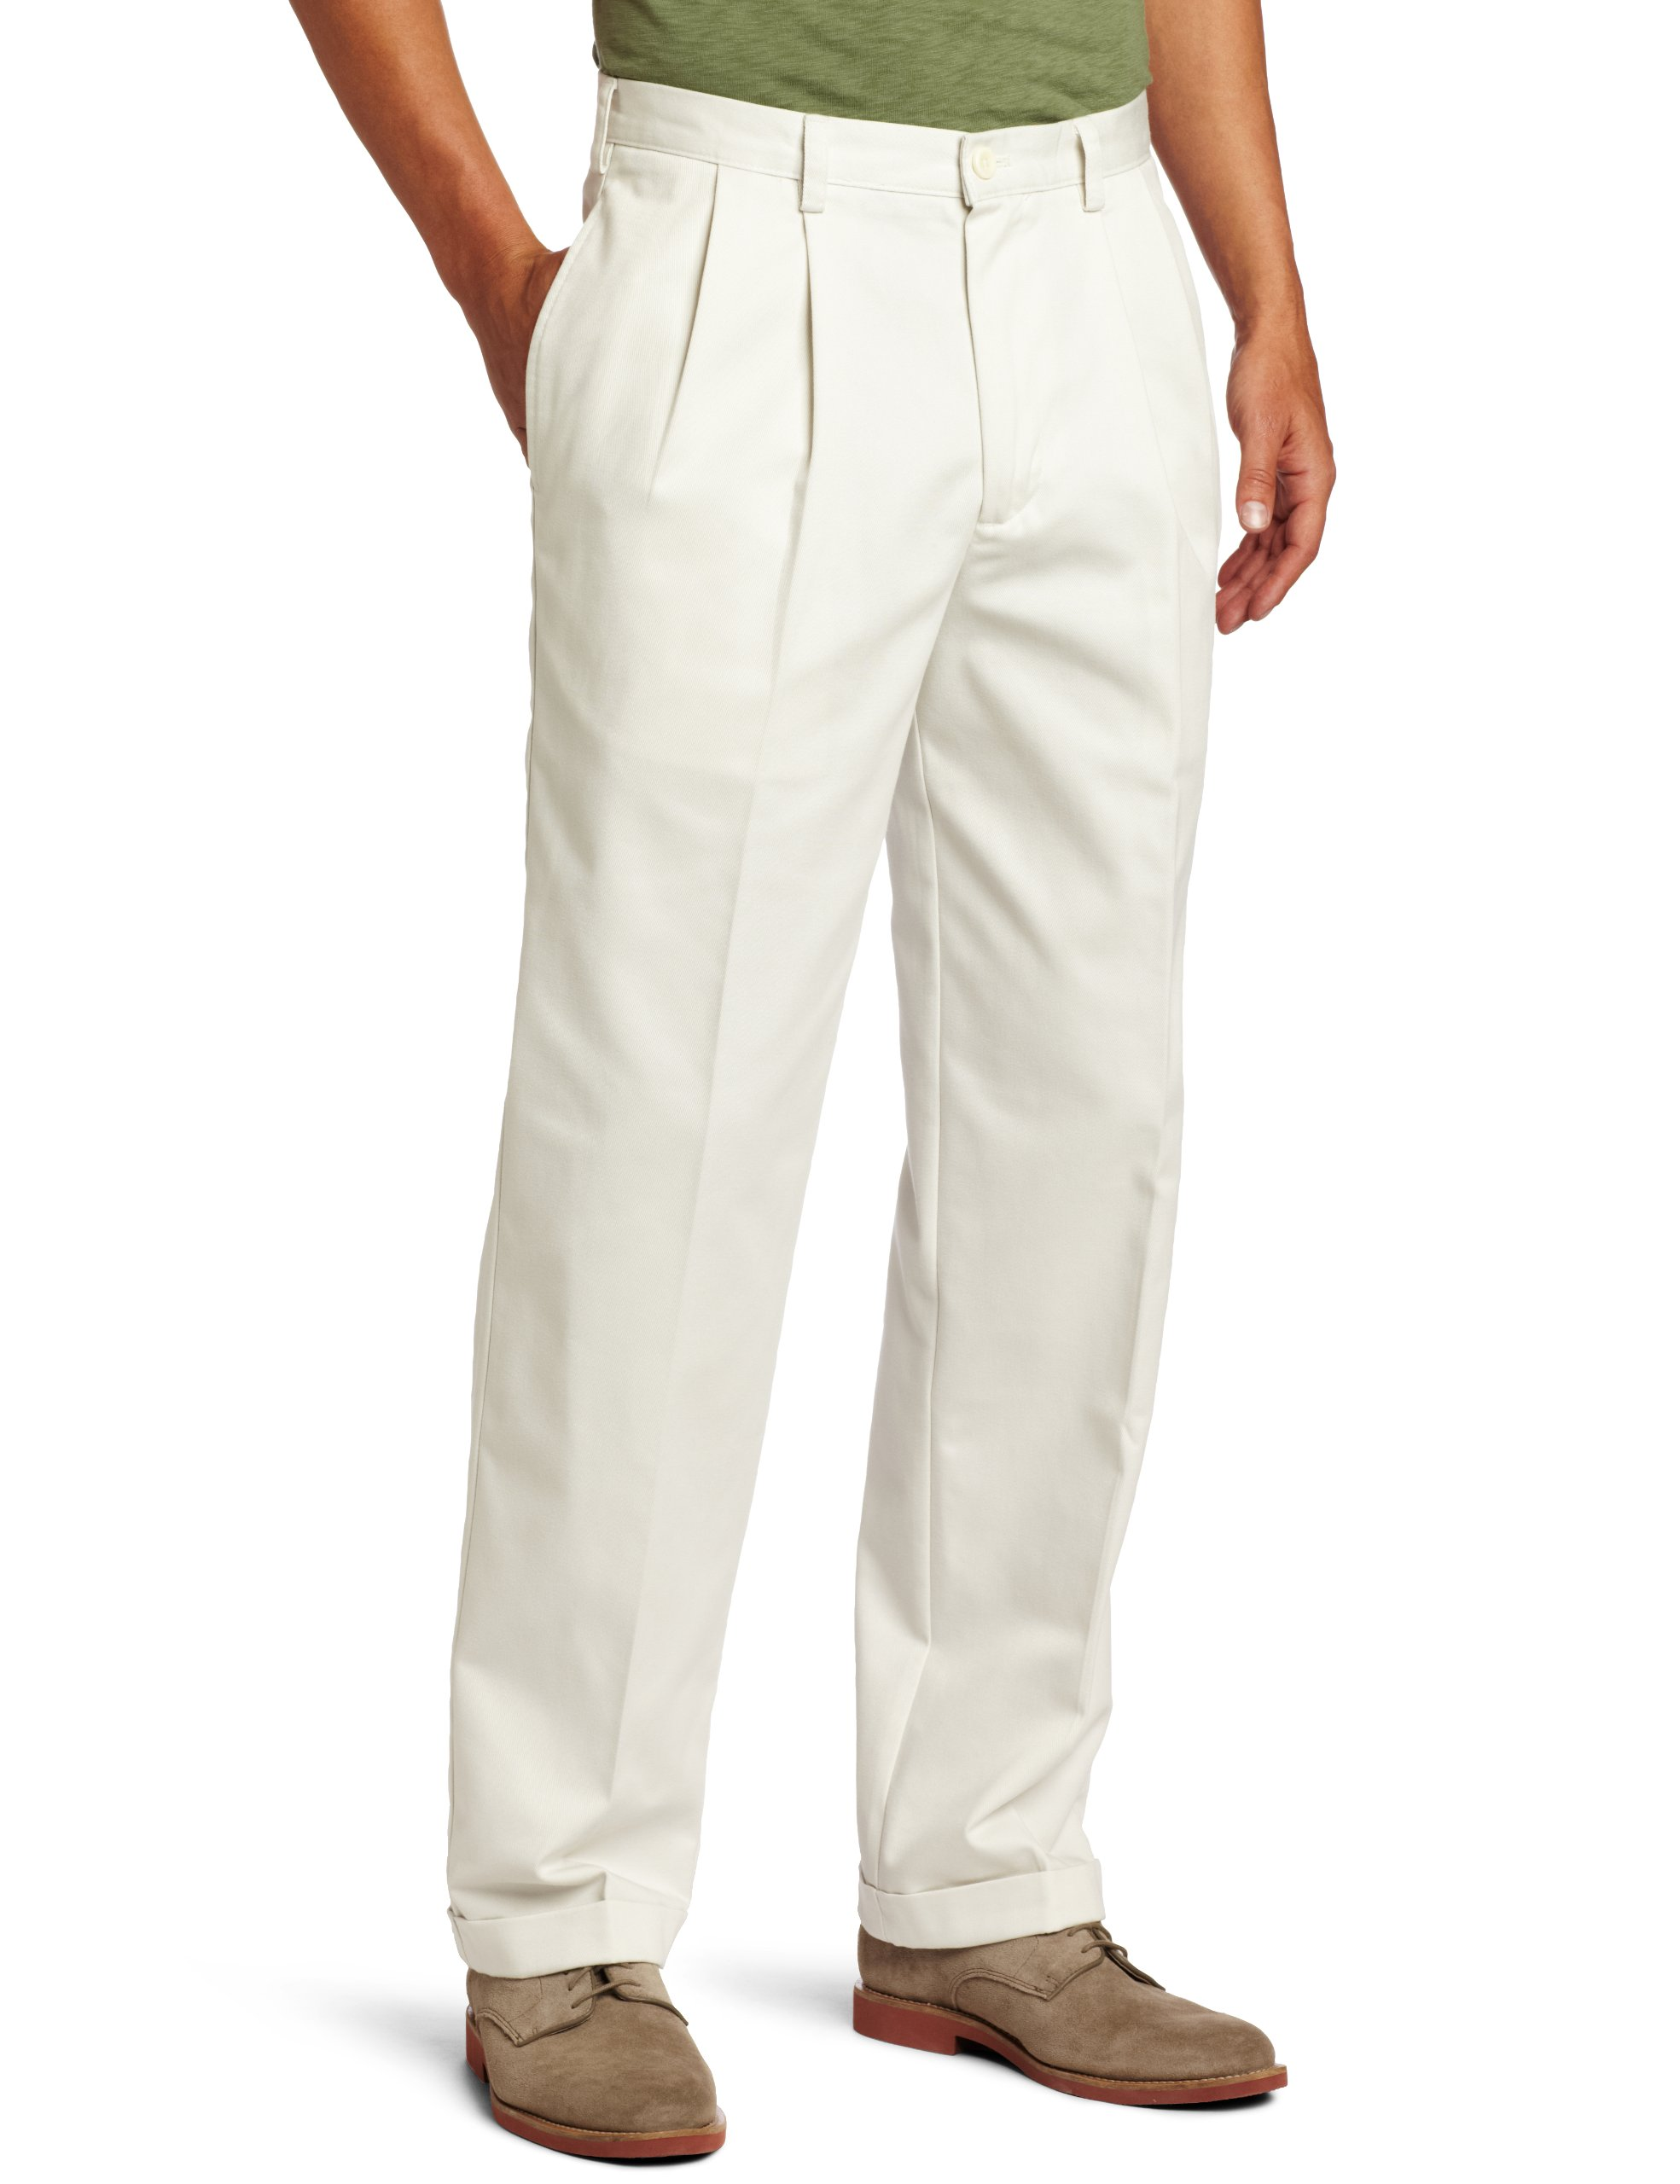 IZOD Men's Big and Tall Pleated Extended Twill Pant, Stone, 50W x 30L